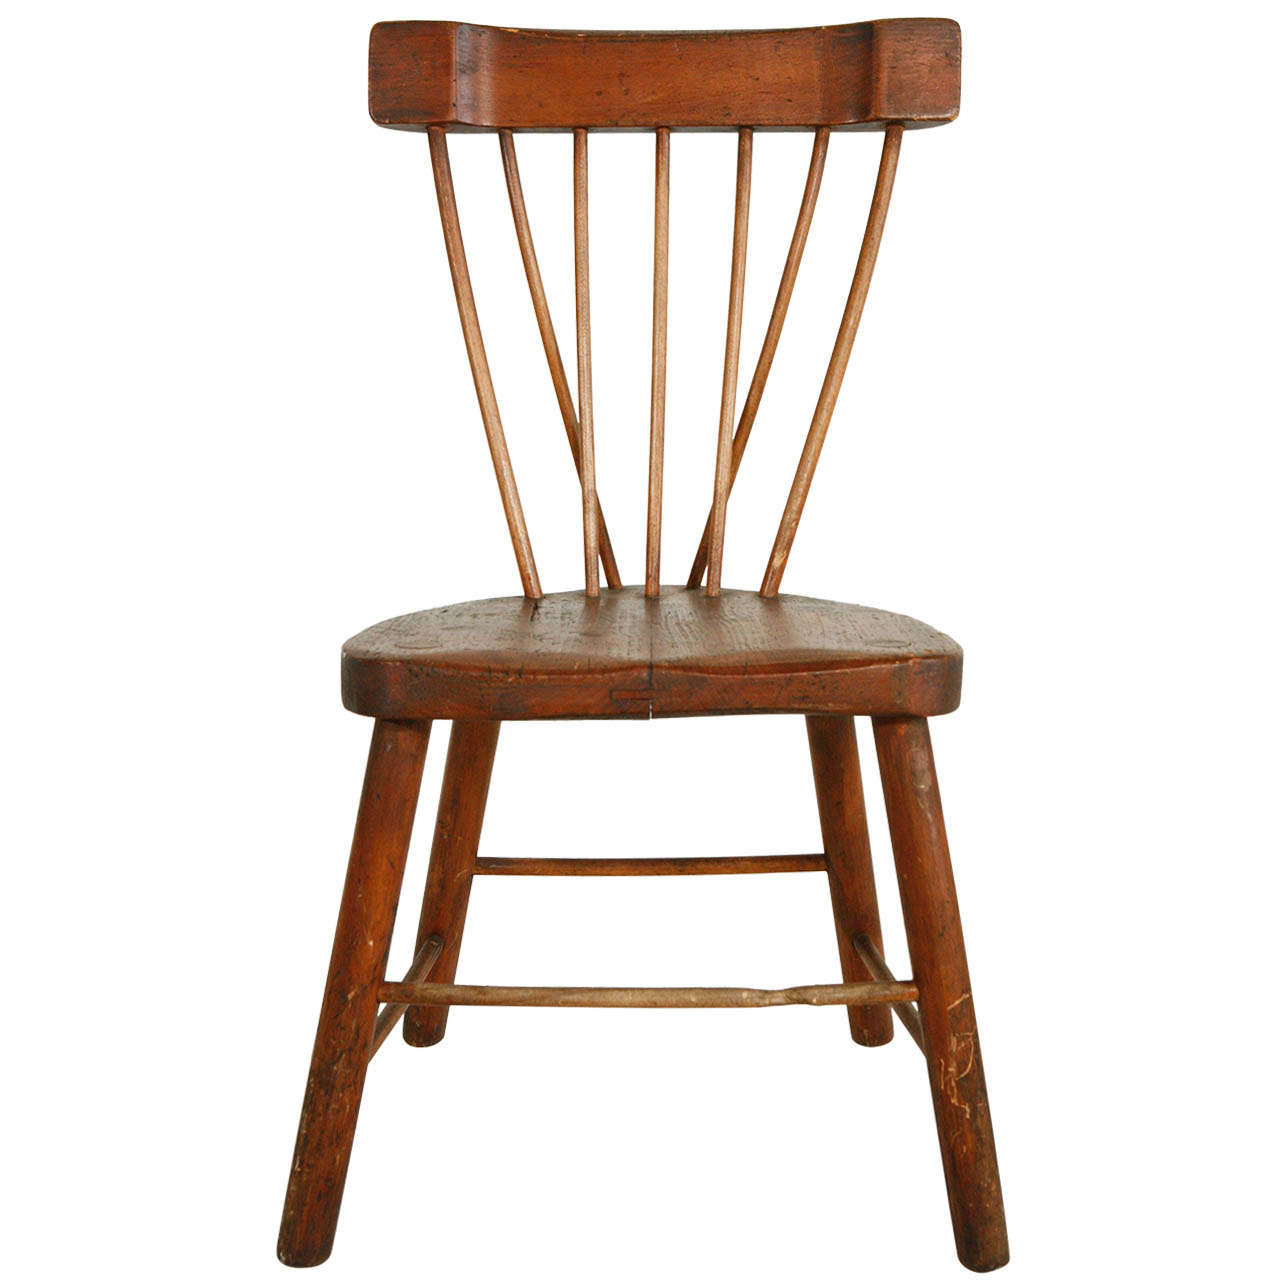 early american chair styles gaming desk bent spindle back windsor at 1stdibs